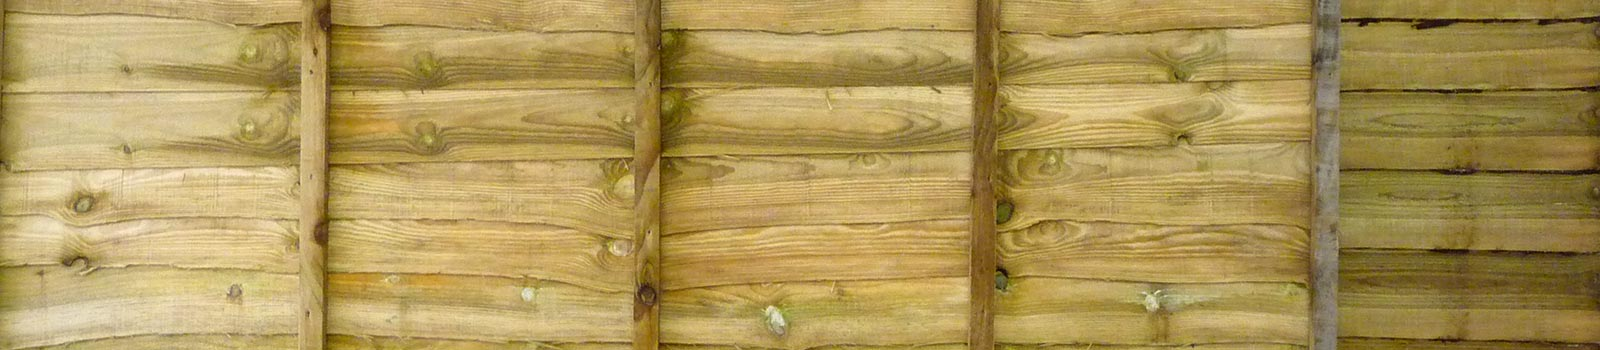 Lapped fencing panels